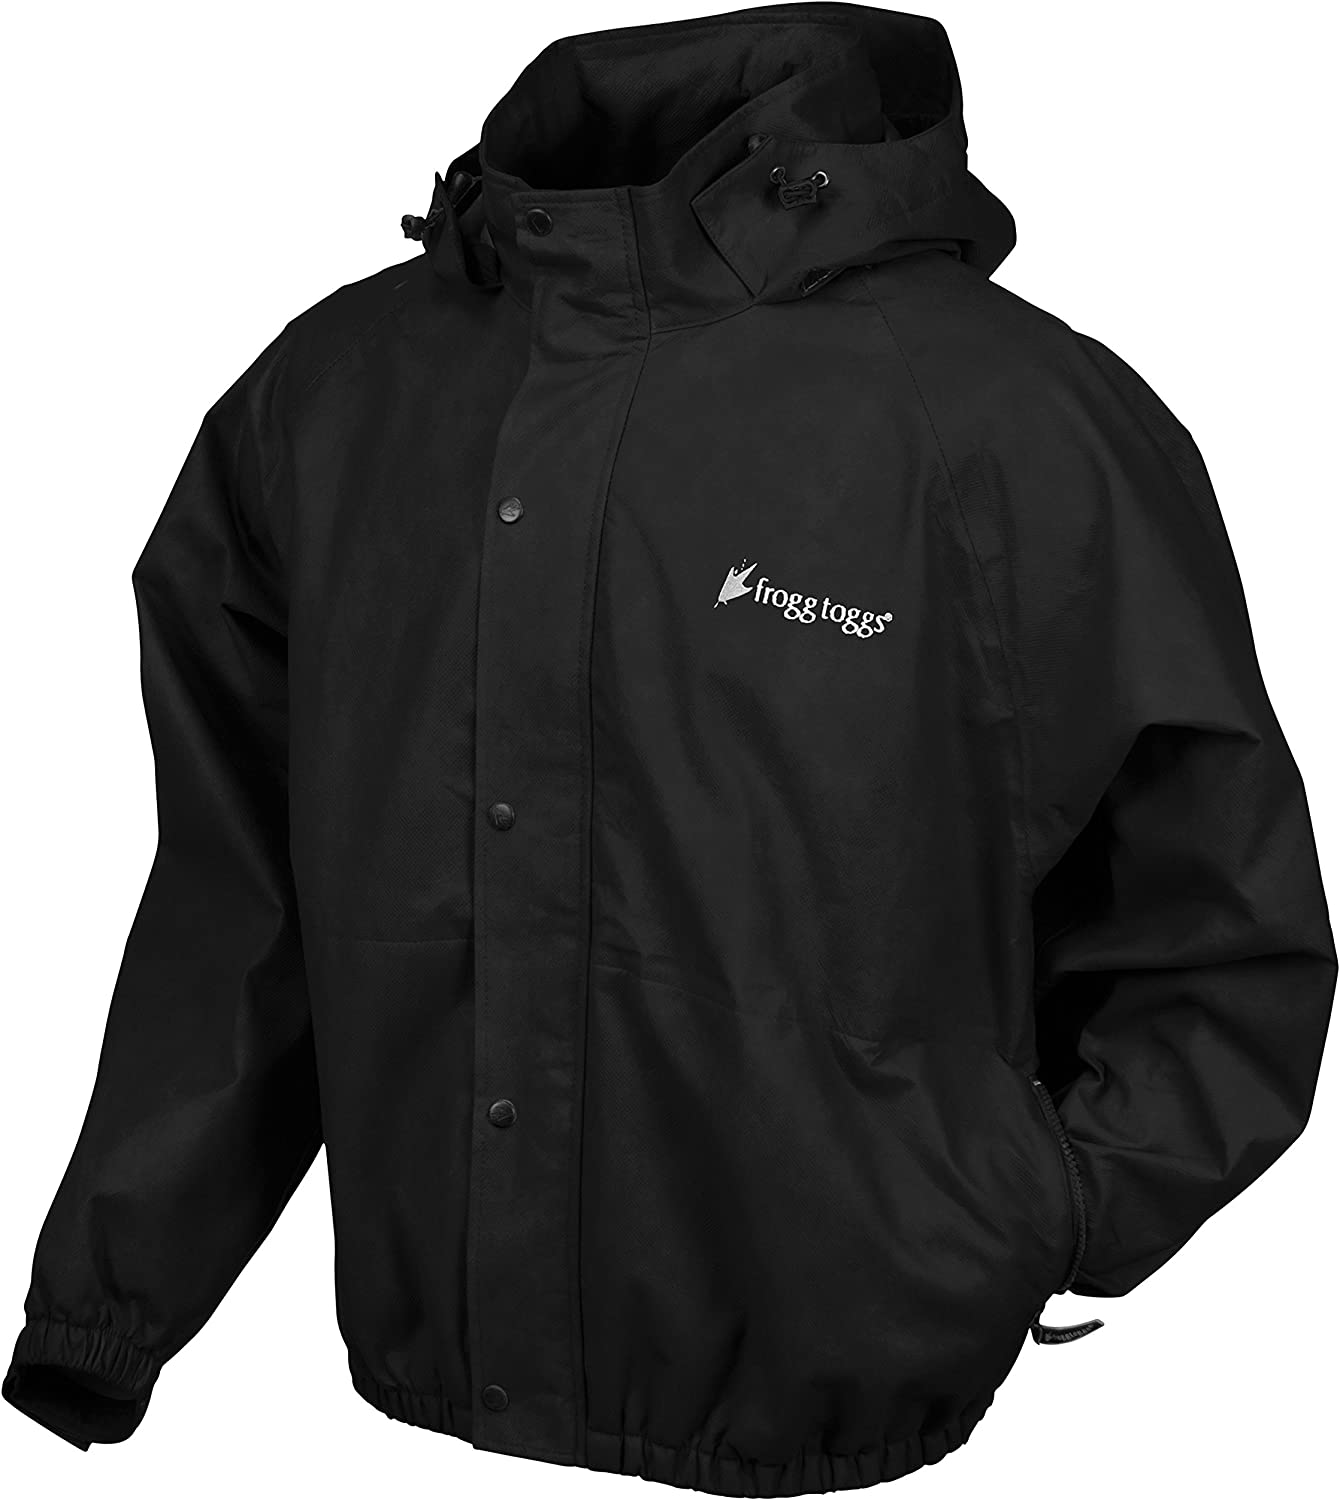 Frogg Toggs Classic Pro Action Rain Jacket with Pockets